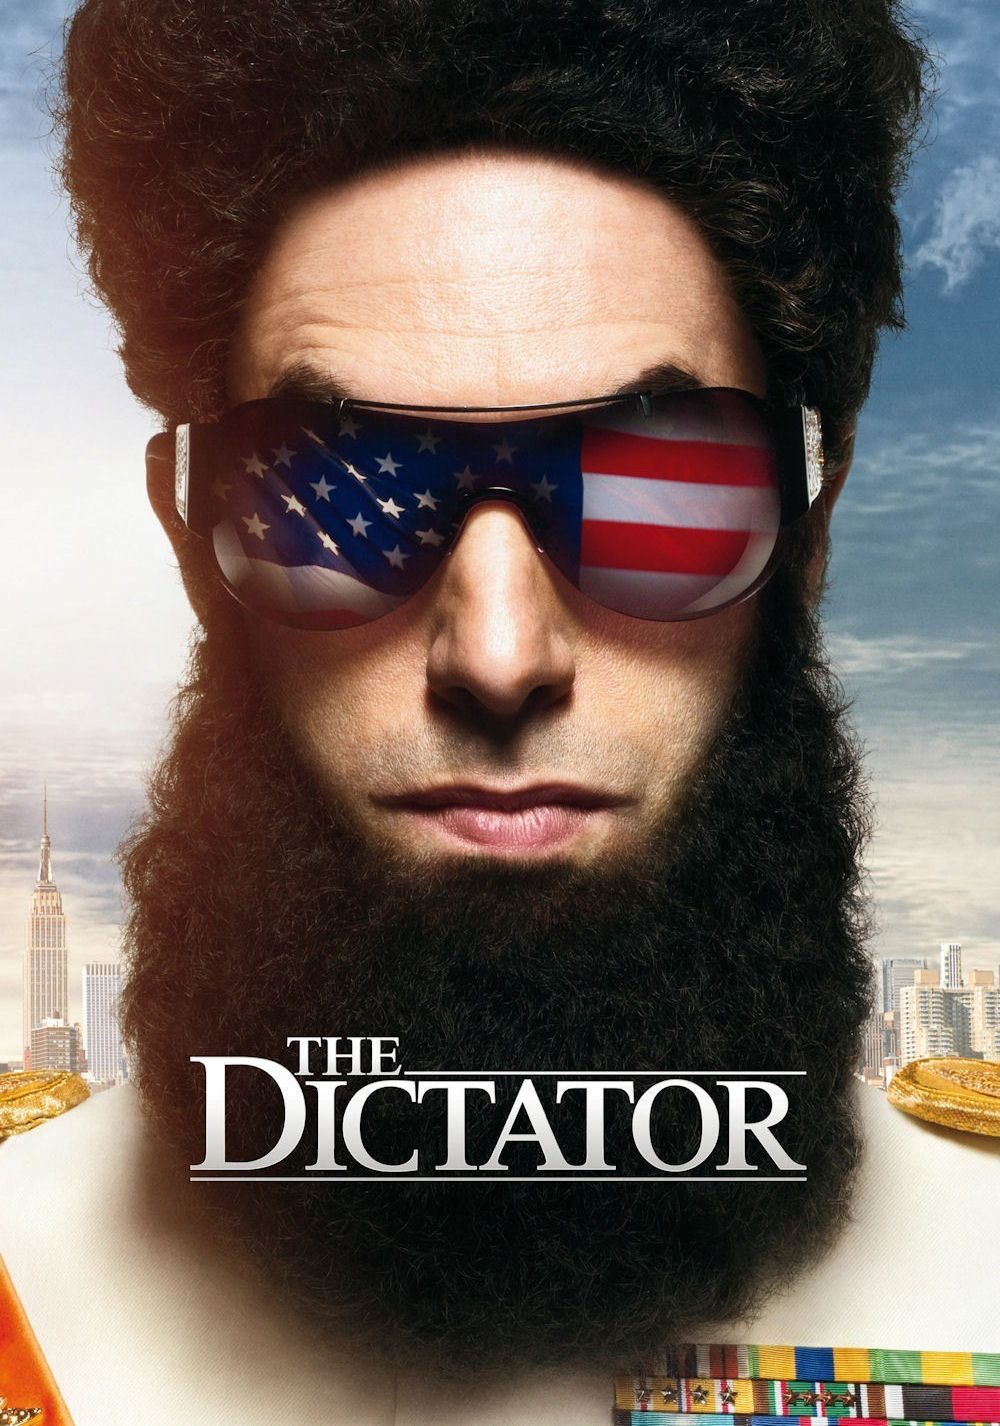 THE DICTATOR (2012) MOVIE TAMIL DUBBED HD